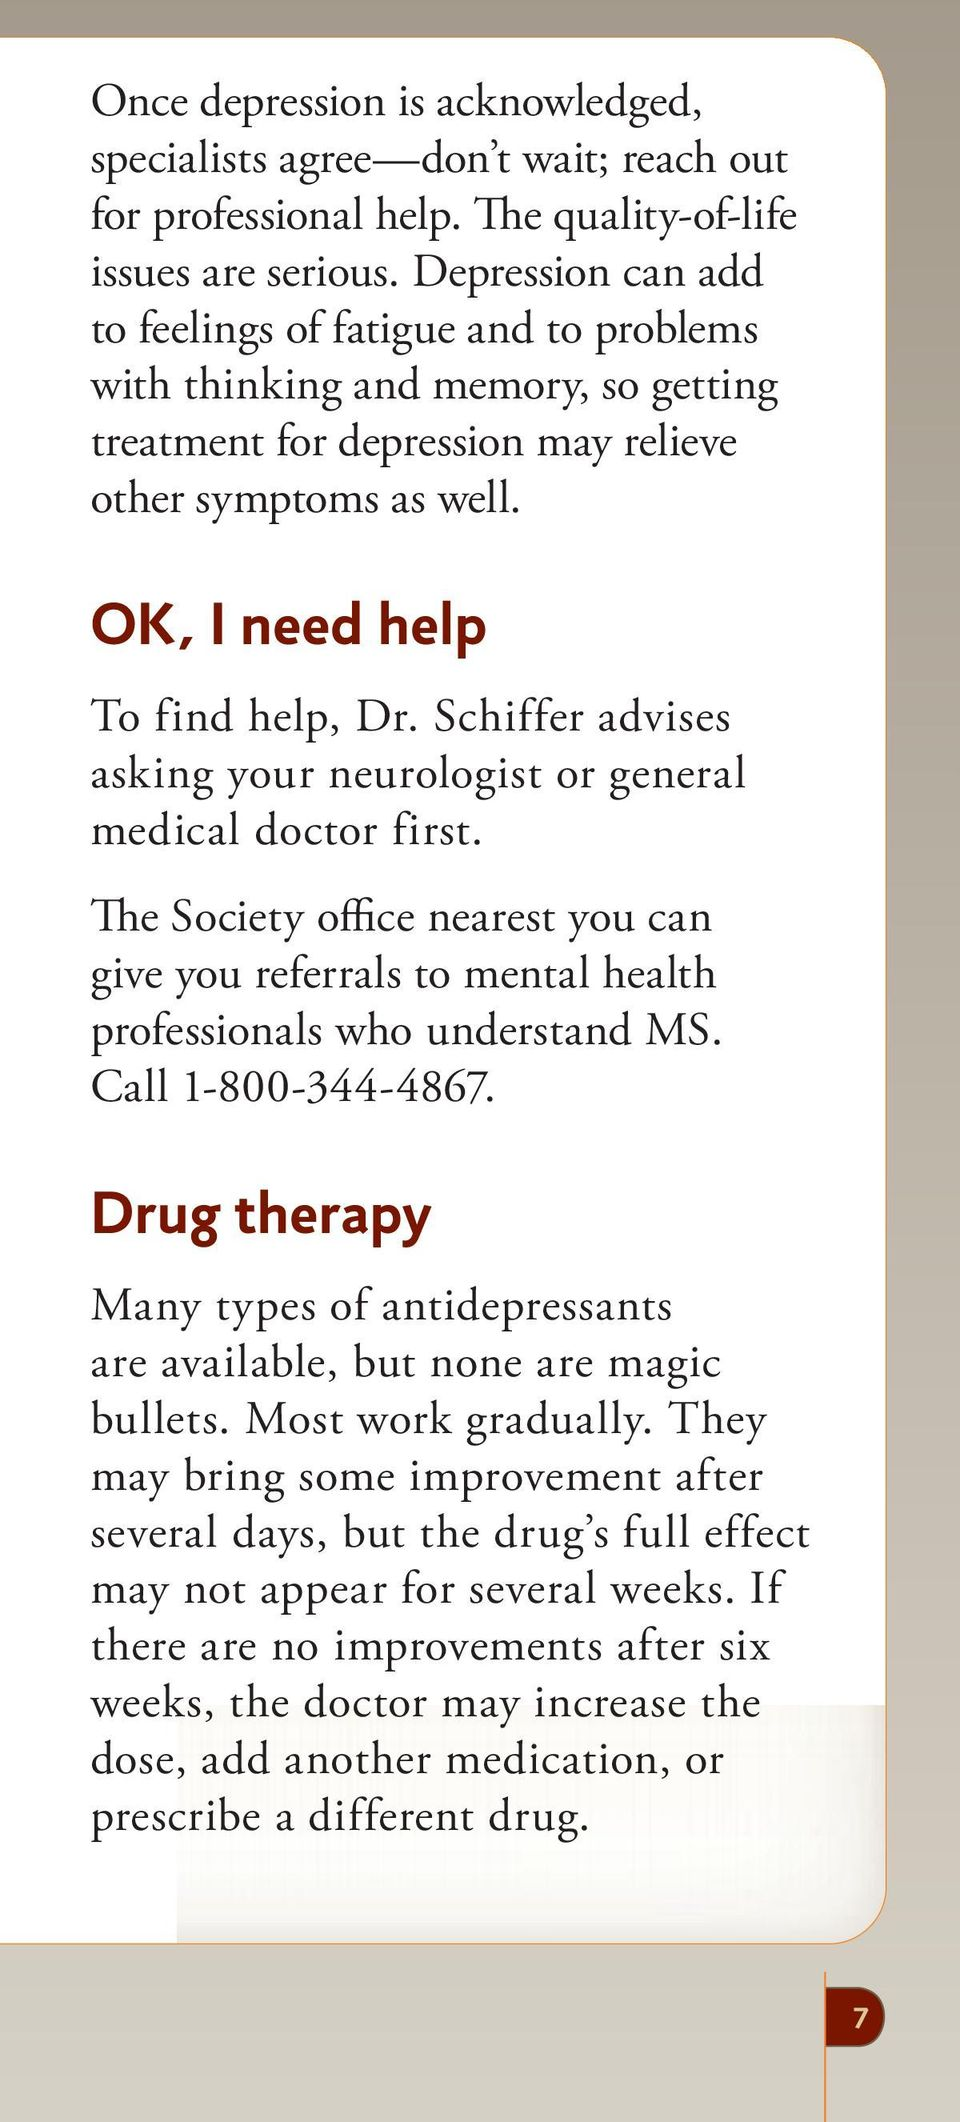 Schiffer advises asking your neurologist or general medical doctor first. The Society office nearest you can give you referrals to mental health professionals who understand MS. Call 1-800-344-4867.